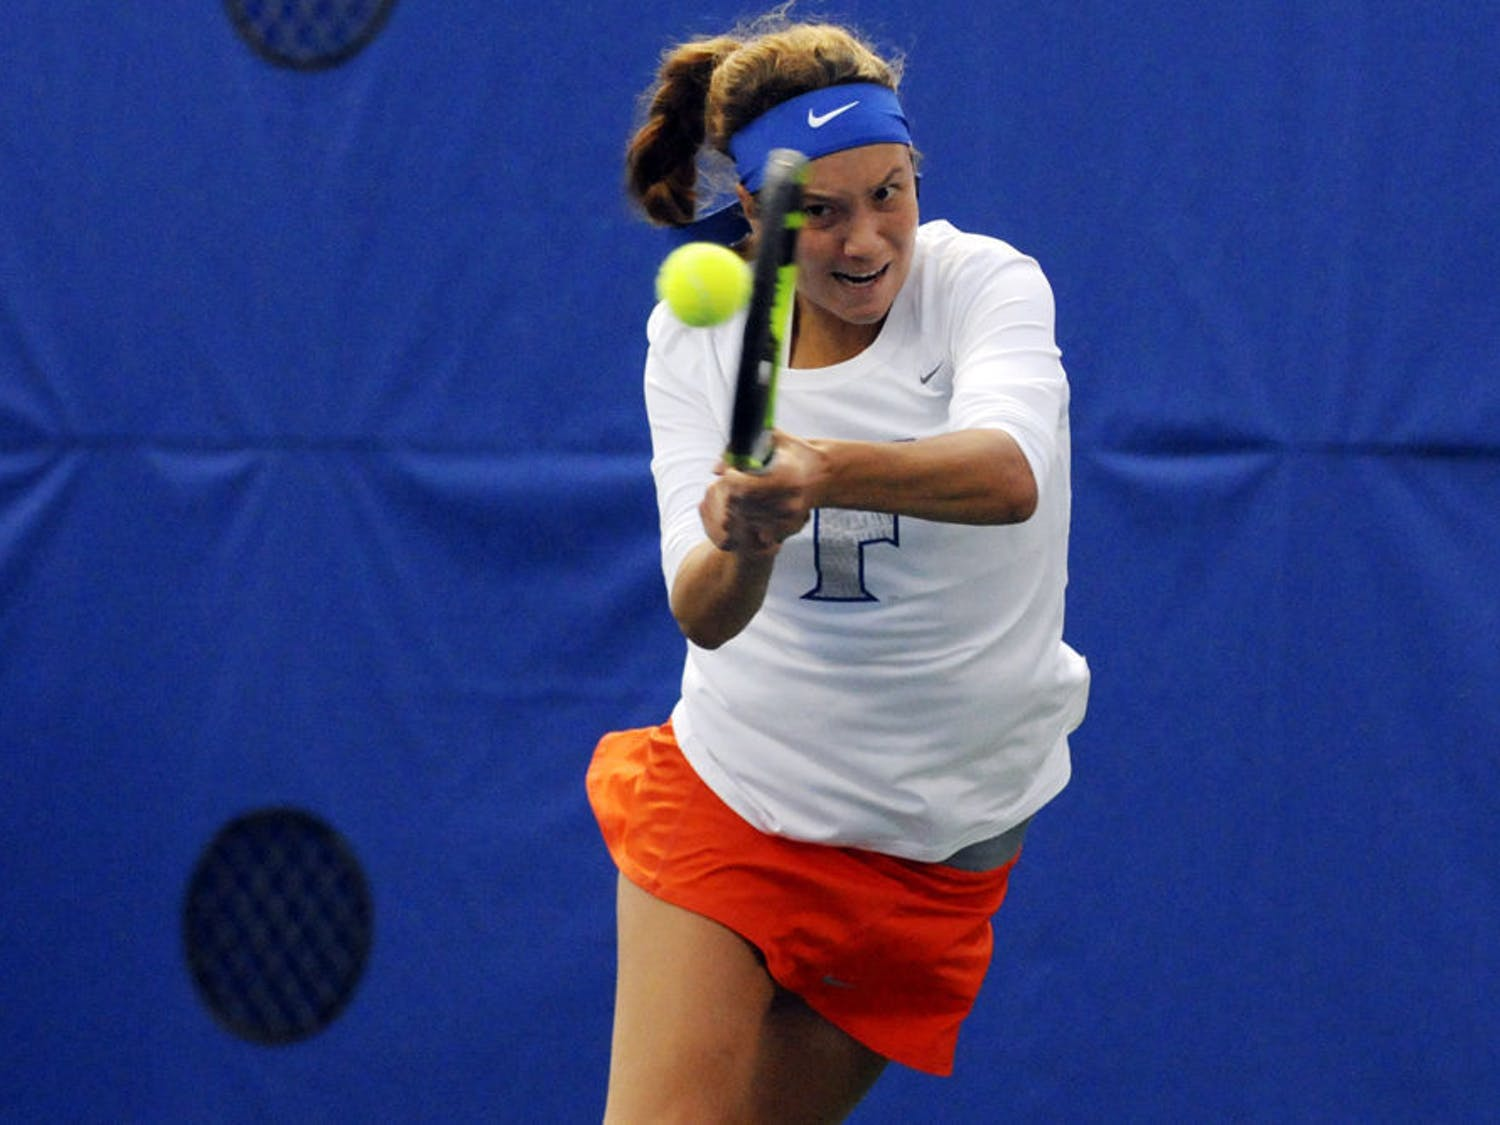 UF's Anna Danilina returns a ball during Florida's 6-1 win over USF on Jan. 27, 2016, at the Ring Tennis Complex.